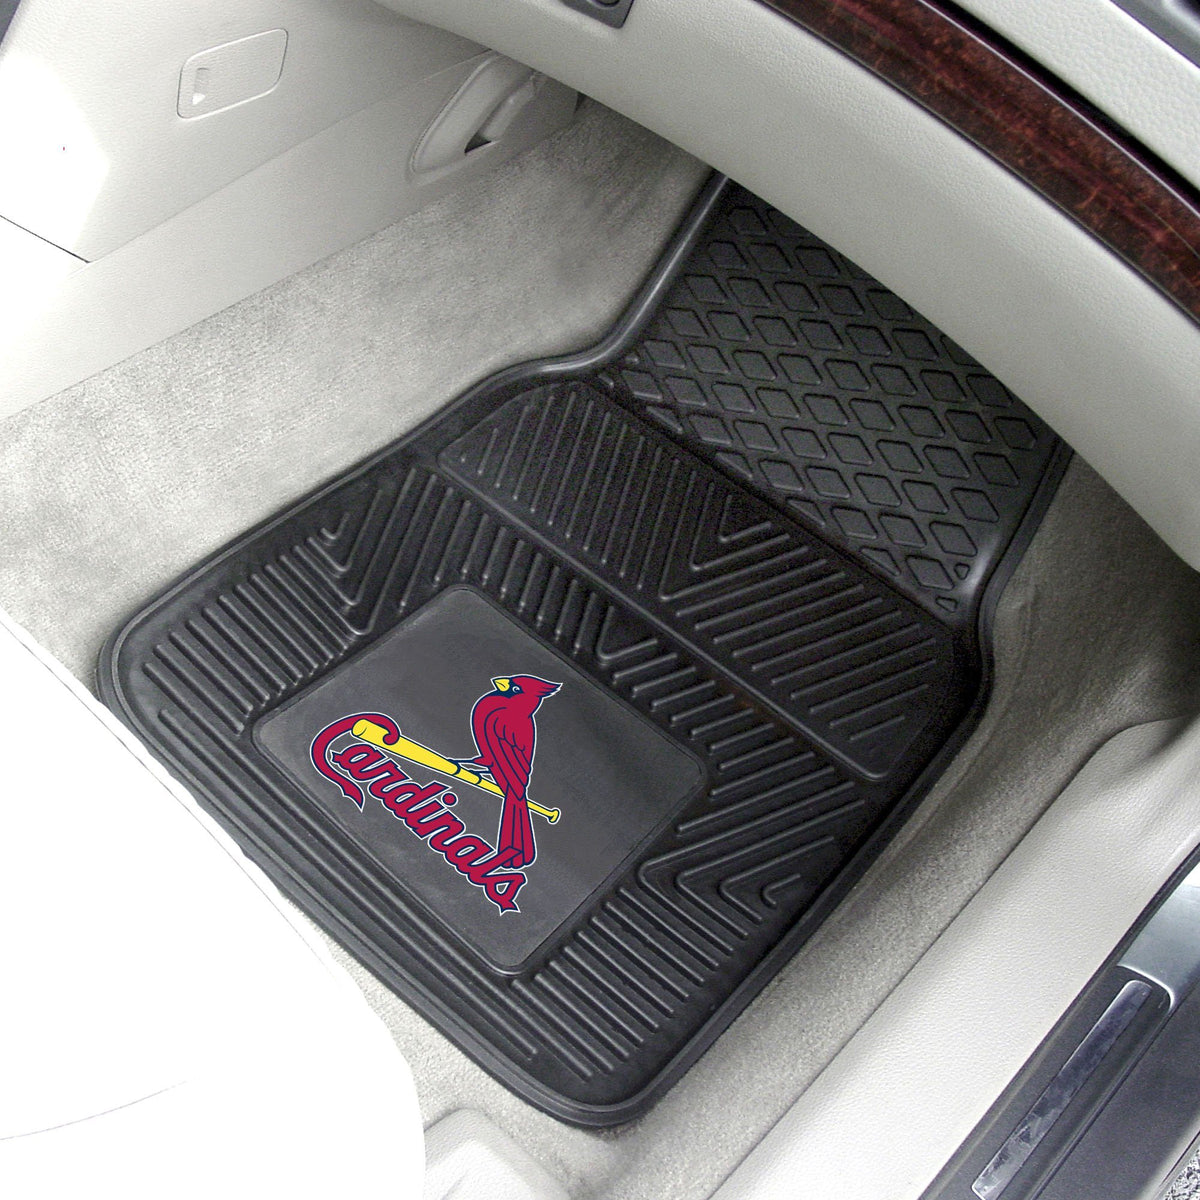 MLB - Vinyl Car Mat, 2-Piece Set MLB Mats, Front Car Mats, 2-pc Vinyl Car Mat Set, MLB, Auto Fan Mats St. Louis Cardinals